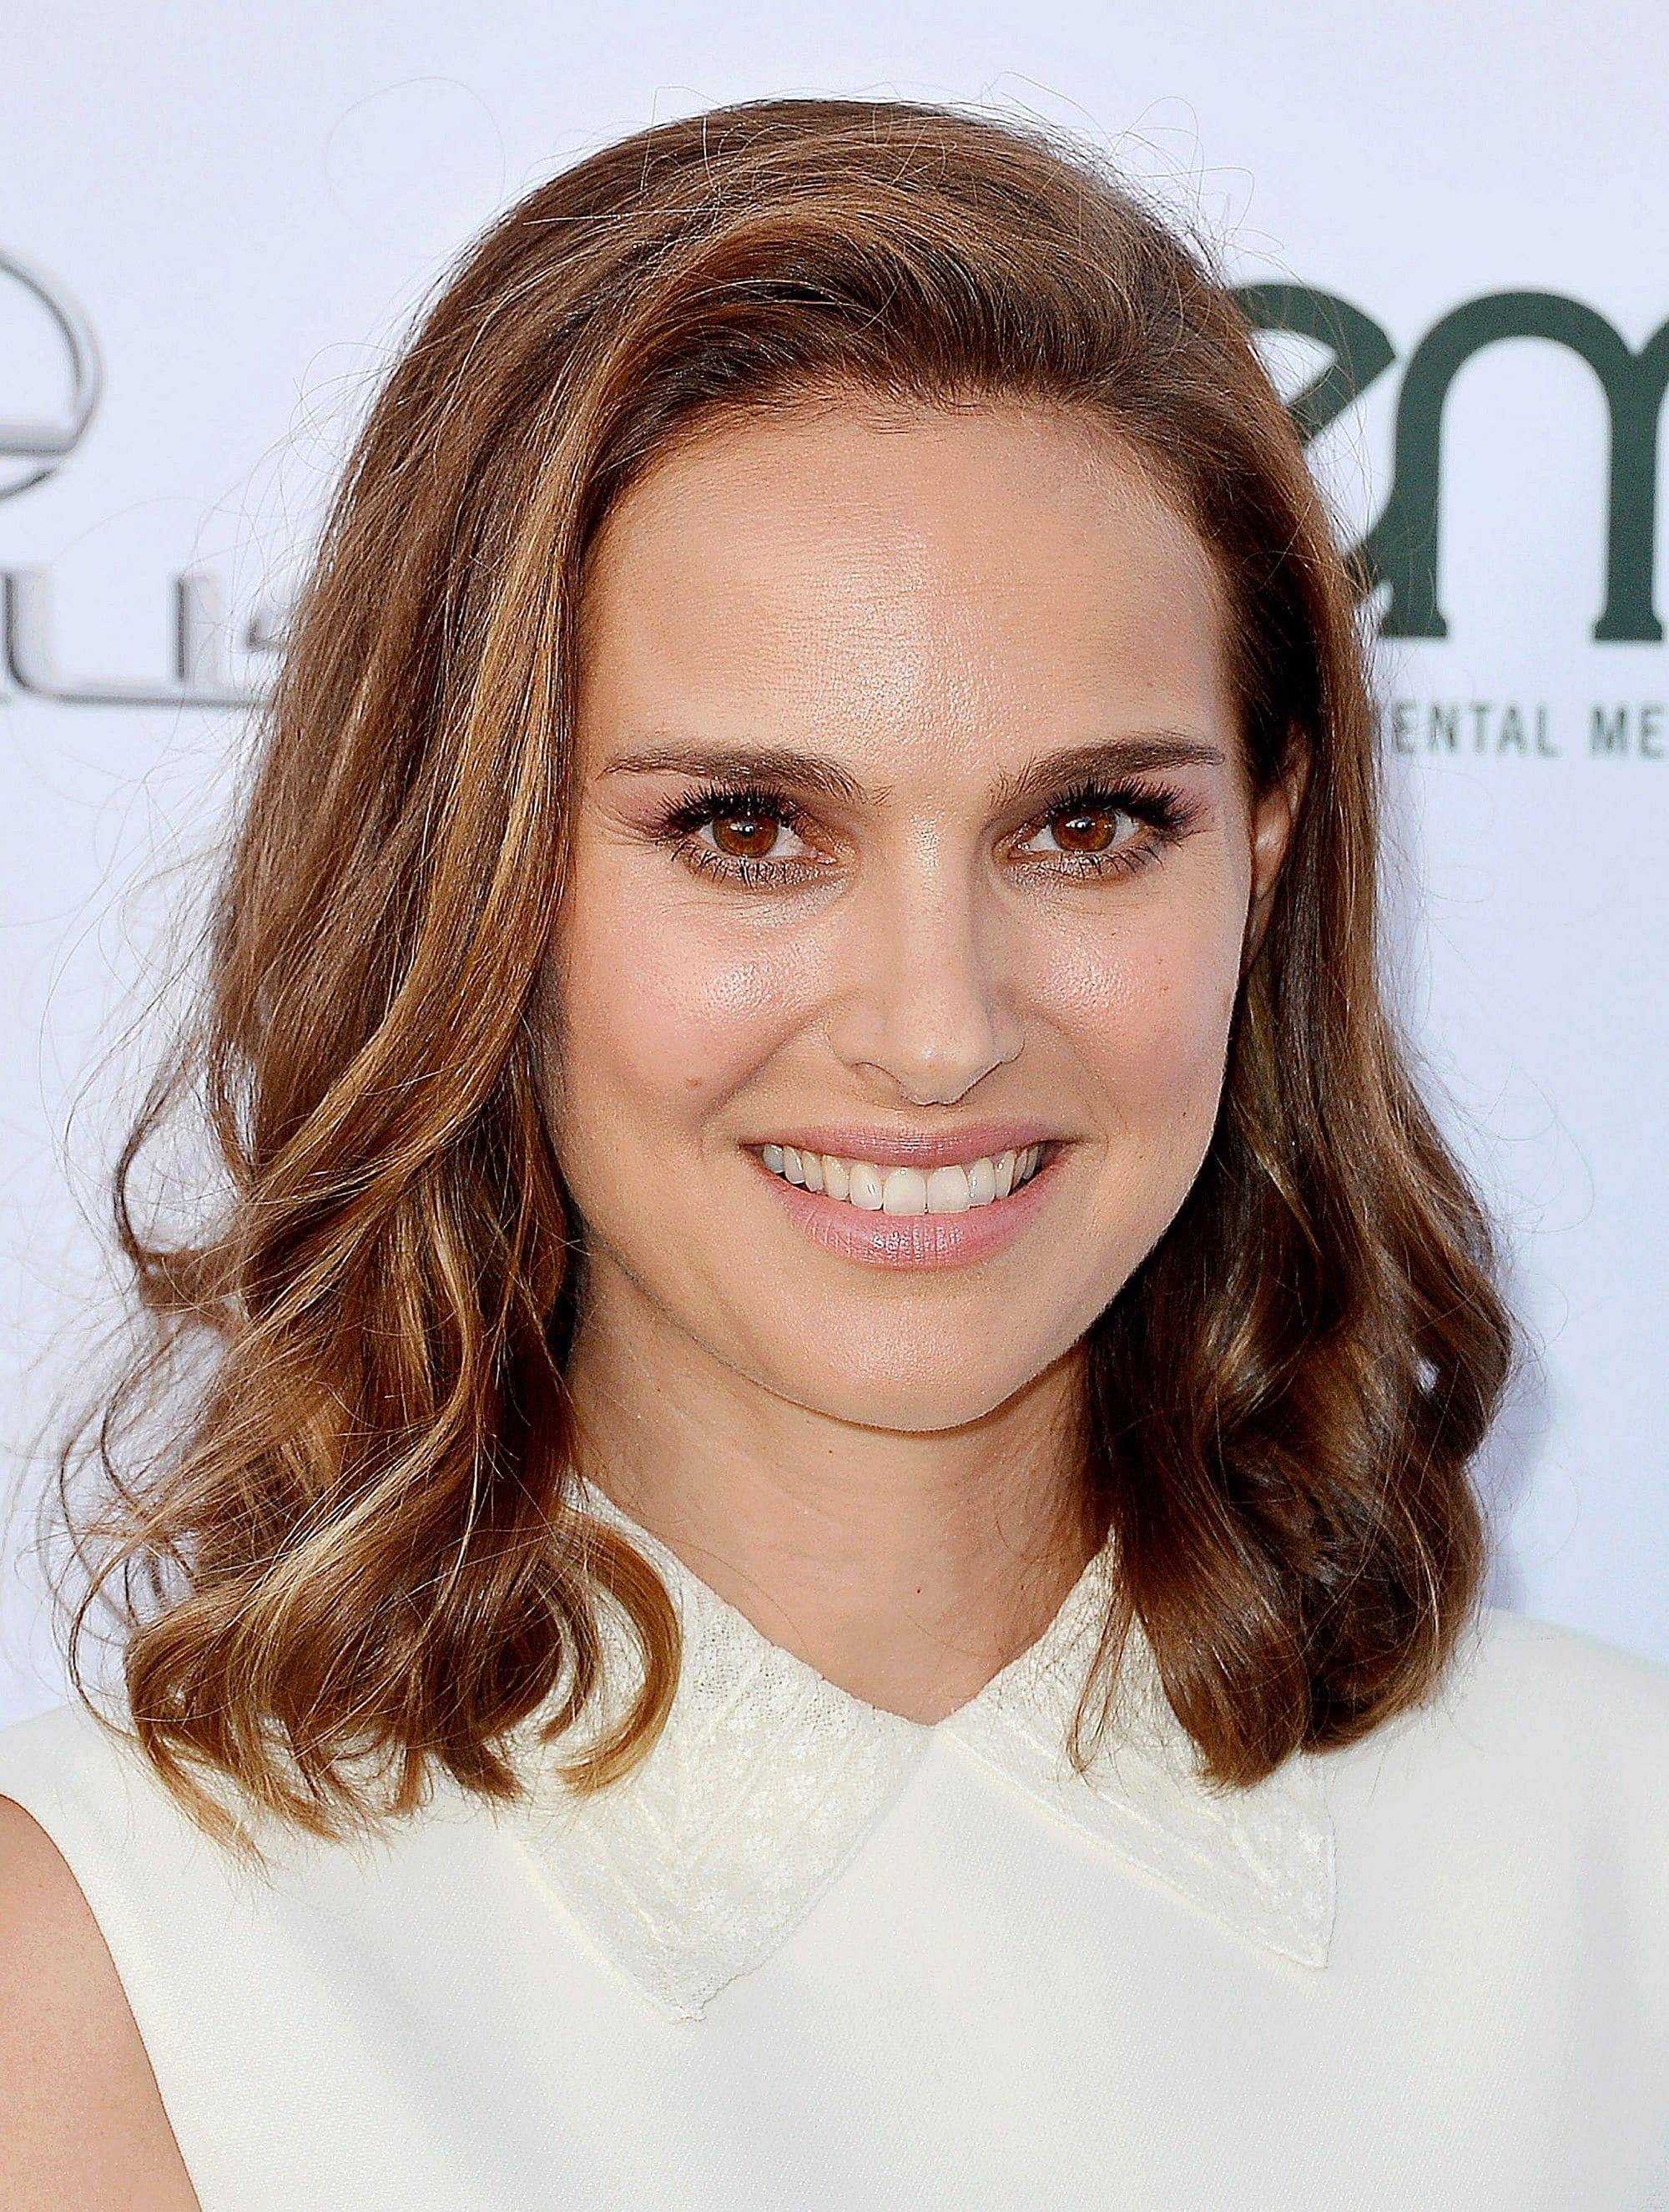 Brown hair with blonde highlights: Natalie Portman with shoulder length wavy brunette hair with highlights